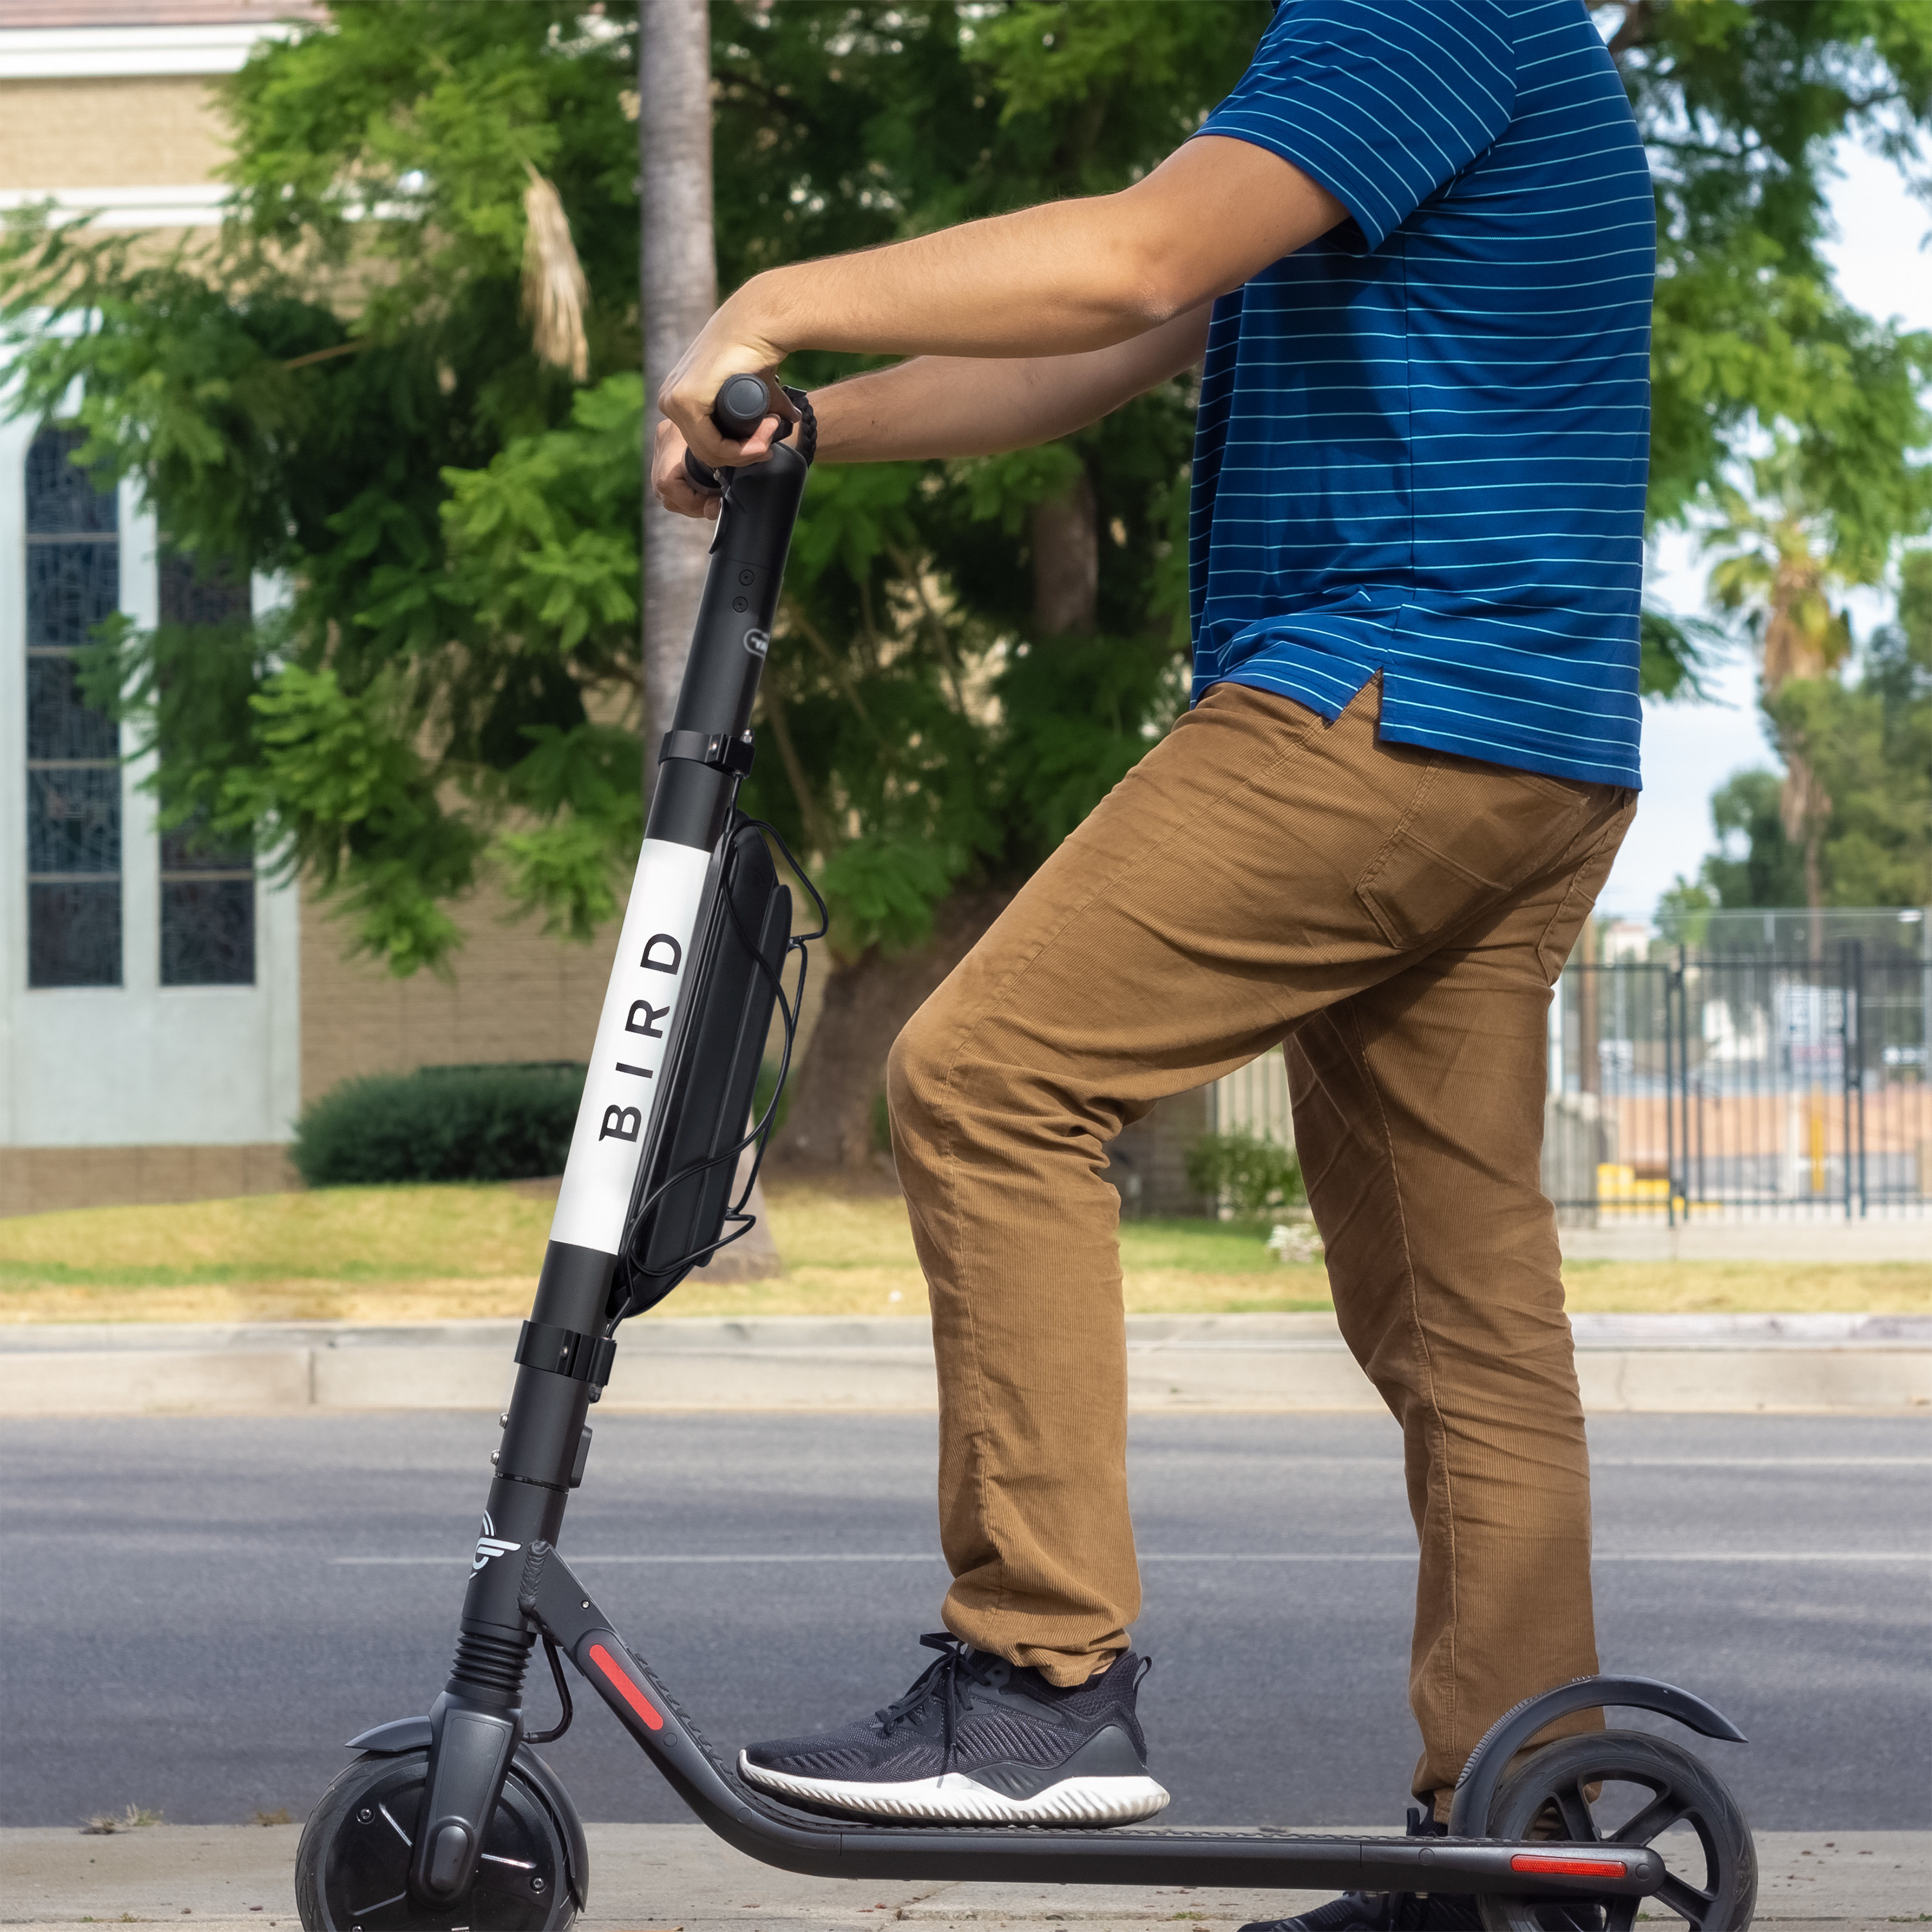 person riding the black electric scooter